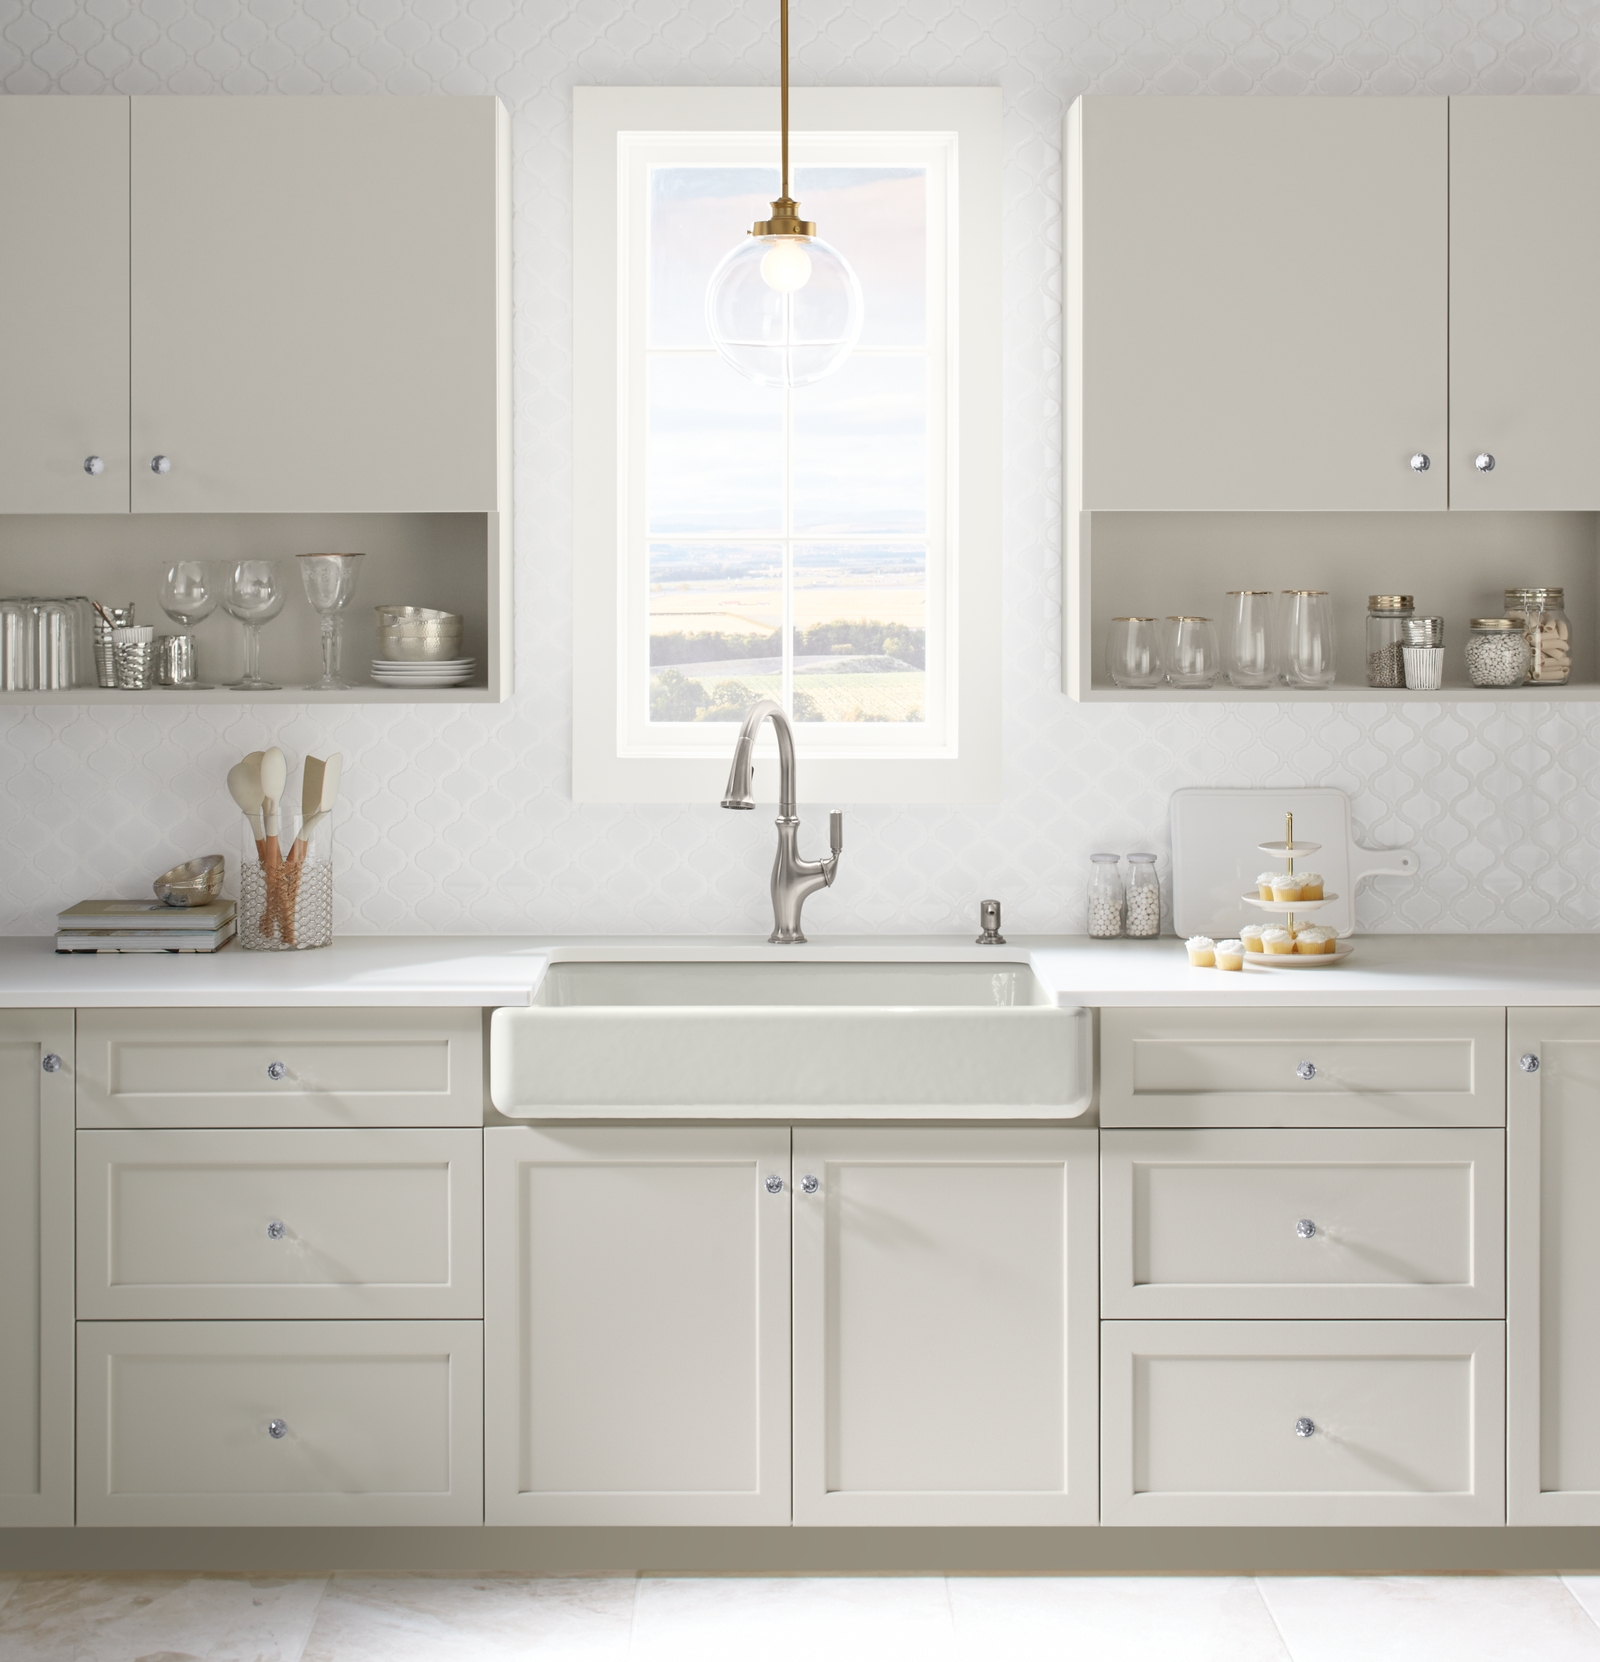 Finding A Farmhouse Kitchen Faucet